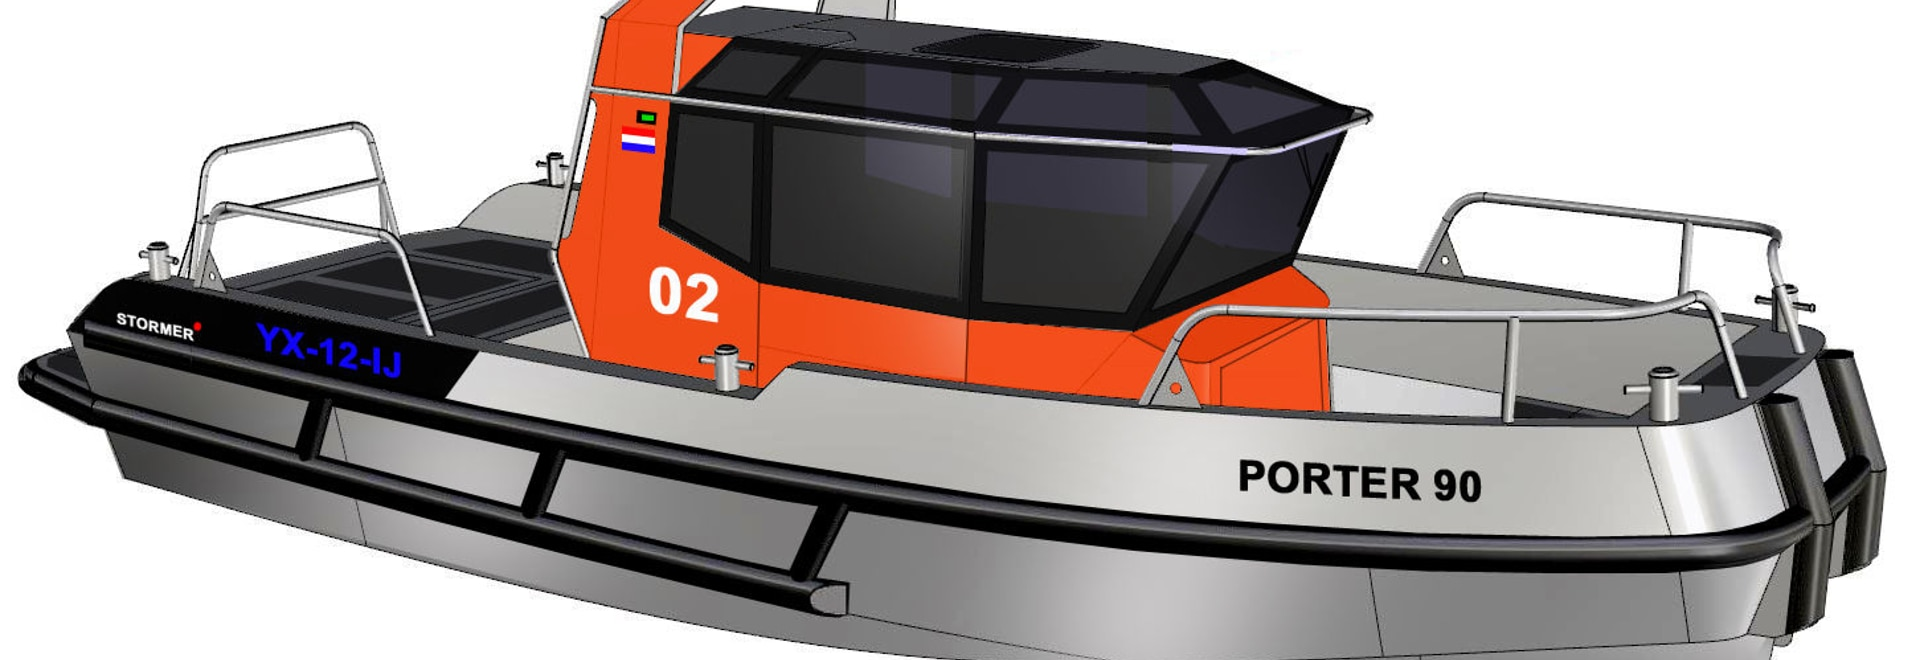 NEW: in-board service boat by Stormer Marine B.V.